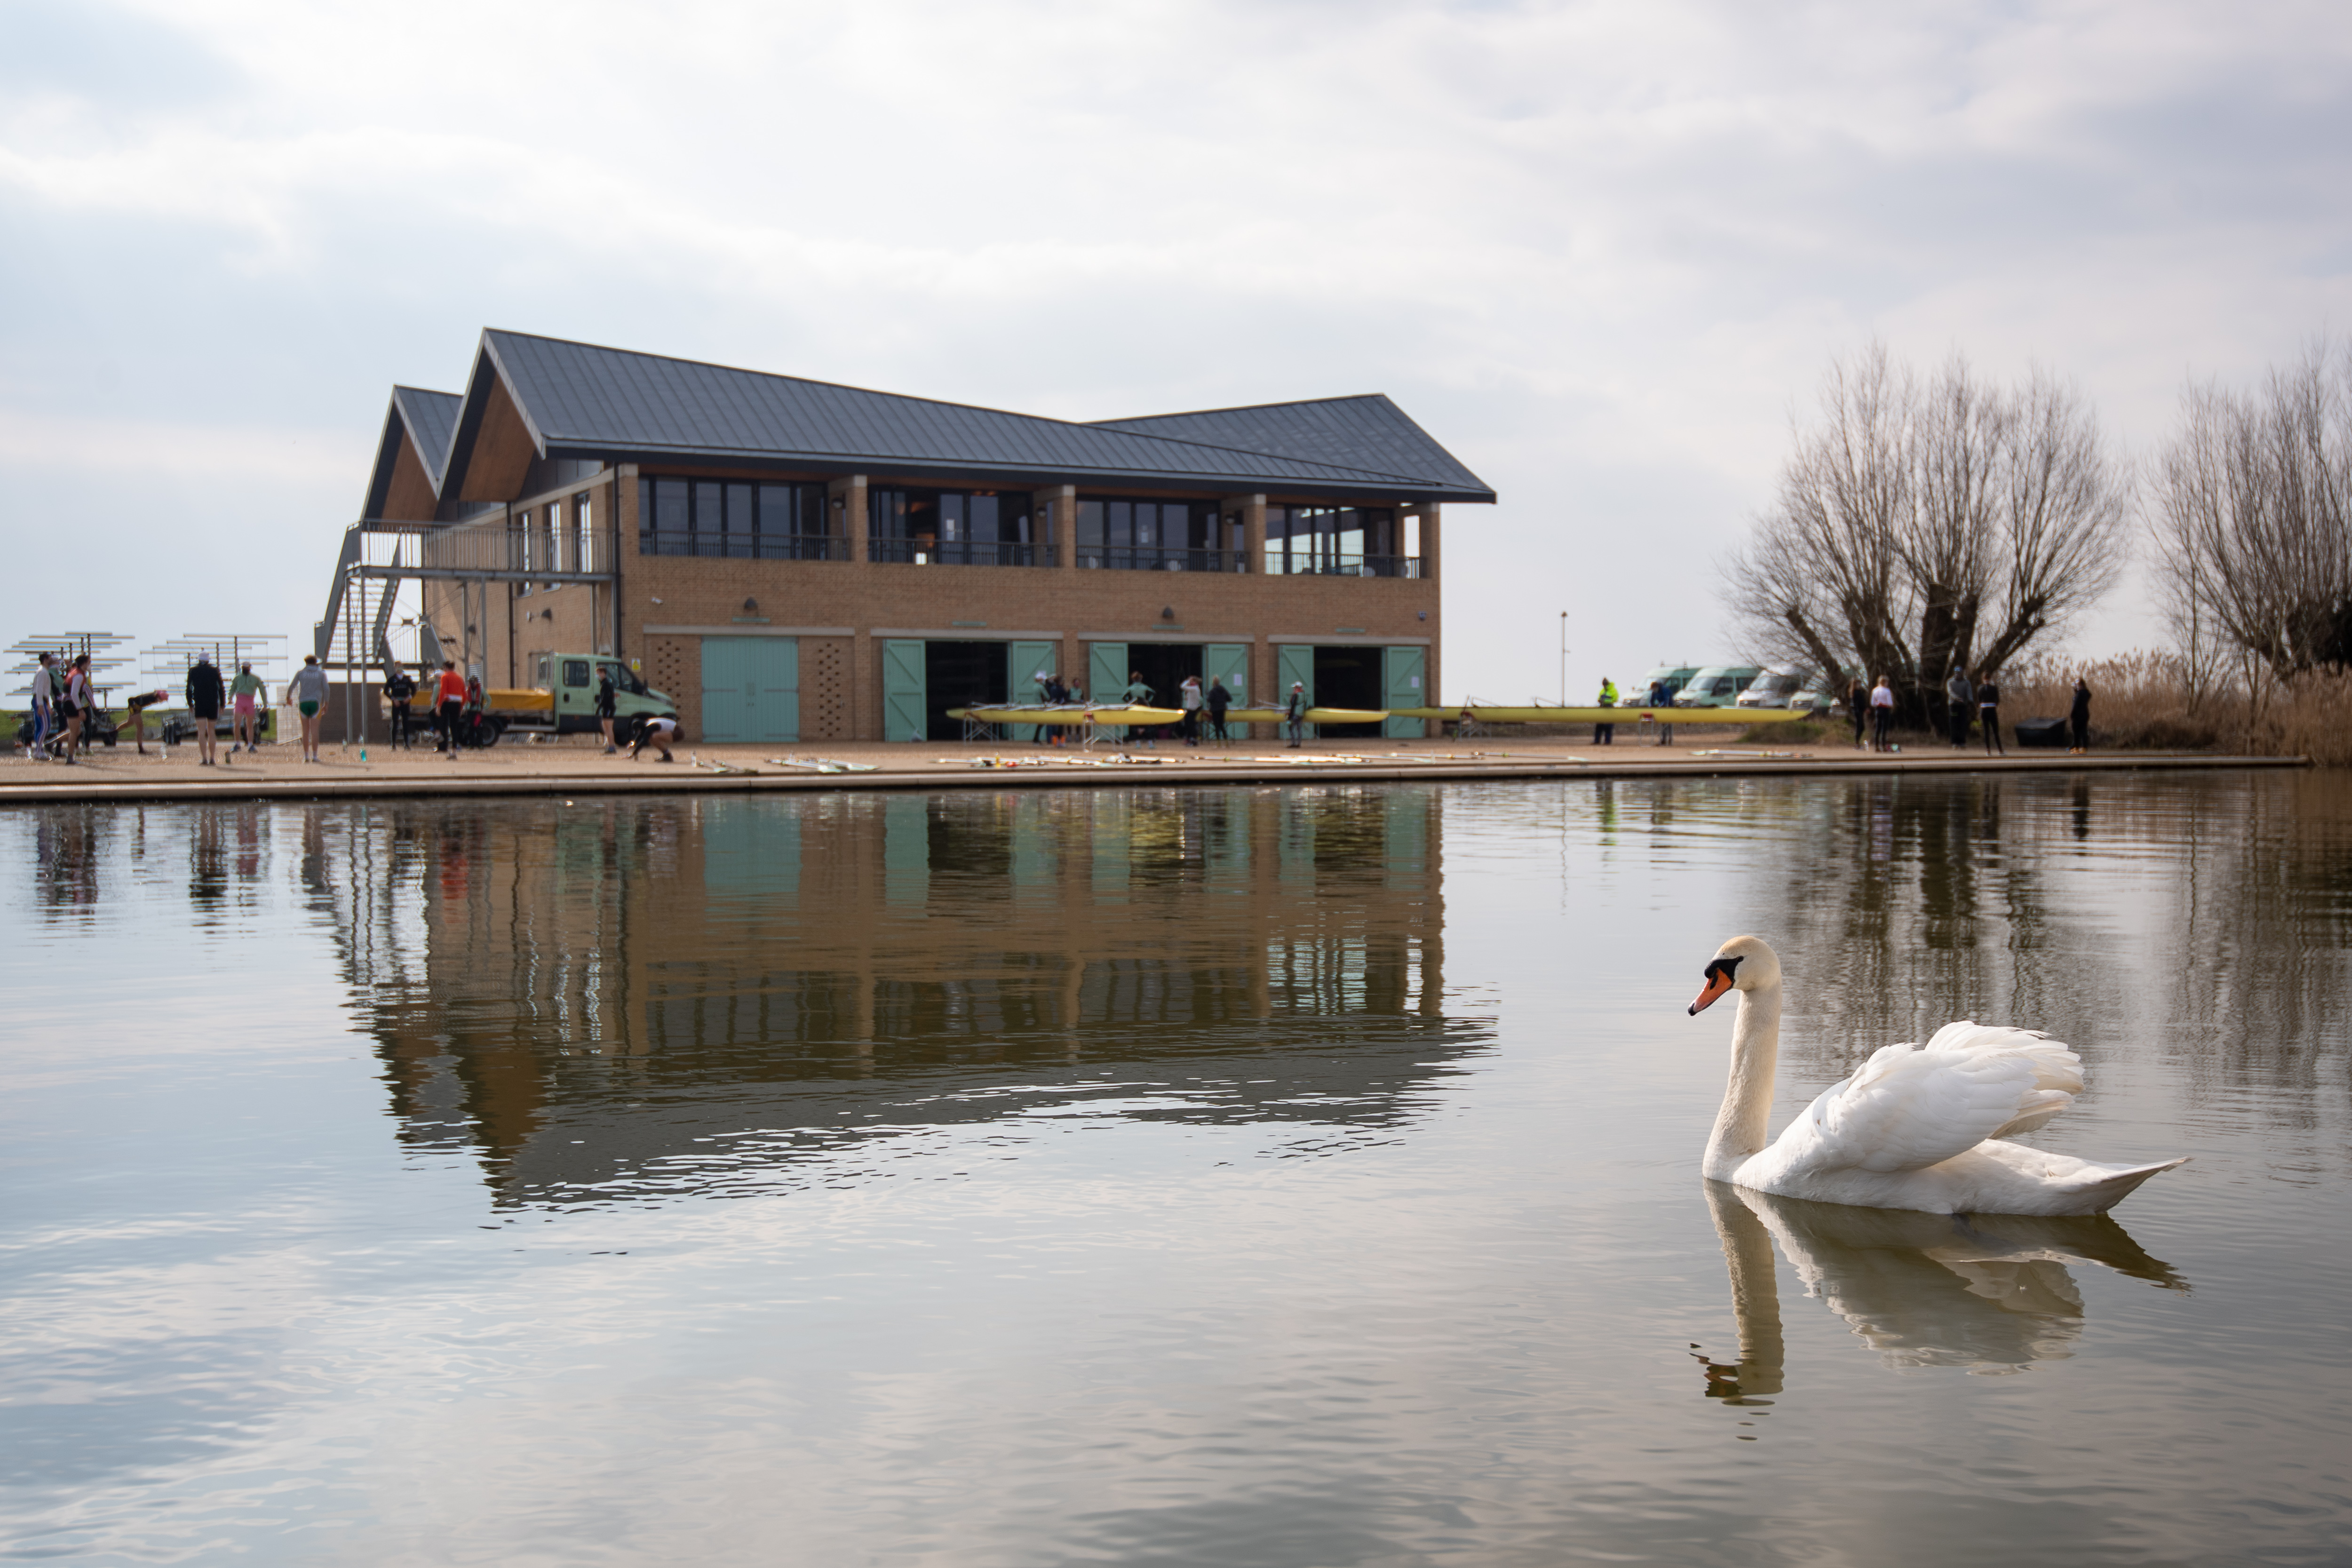 <p>A swan passes the Cambridge University Boat Club as crews train on the River Great Ouse near Ely in Cambridgeshire for the first time, as the Blue boats of Cambridge University Boat Club can return to training on the water from today under the strict Covid guidelines for elite sport agreed with the UK government.</p>